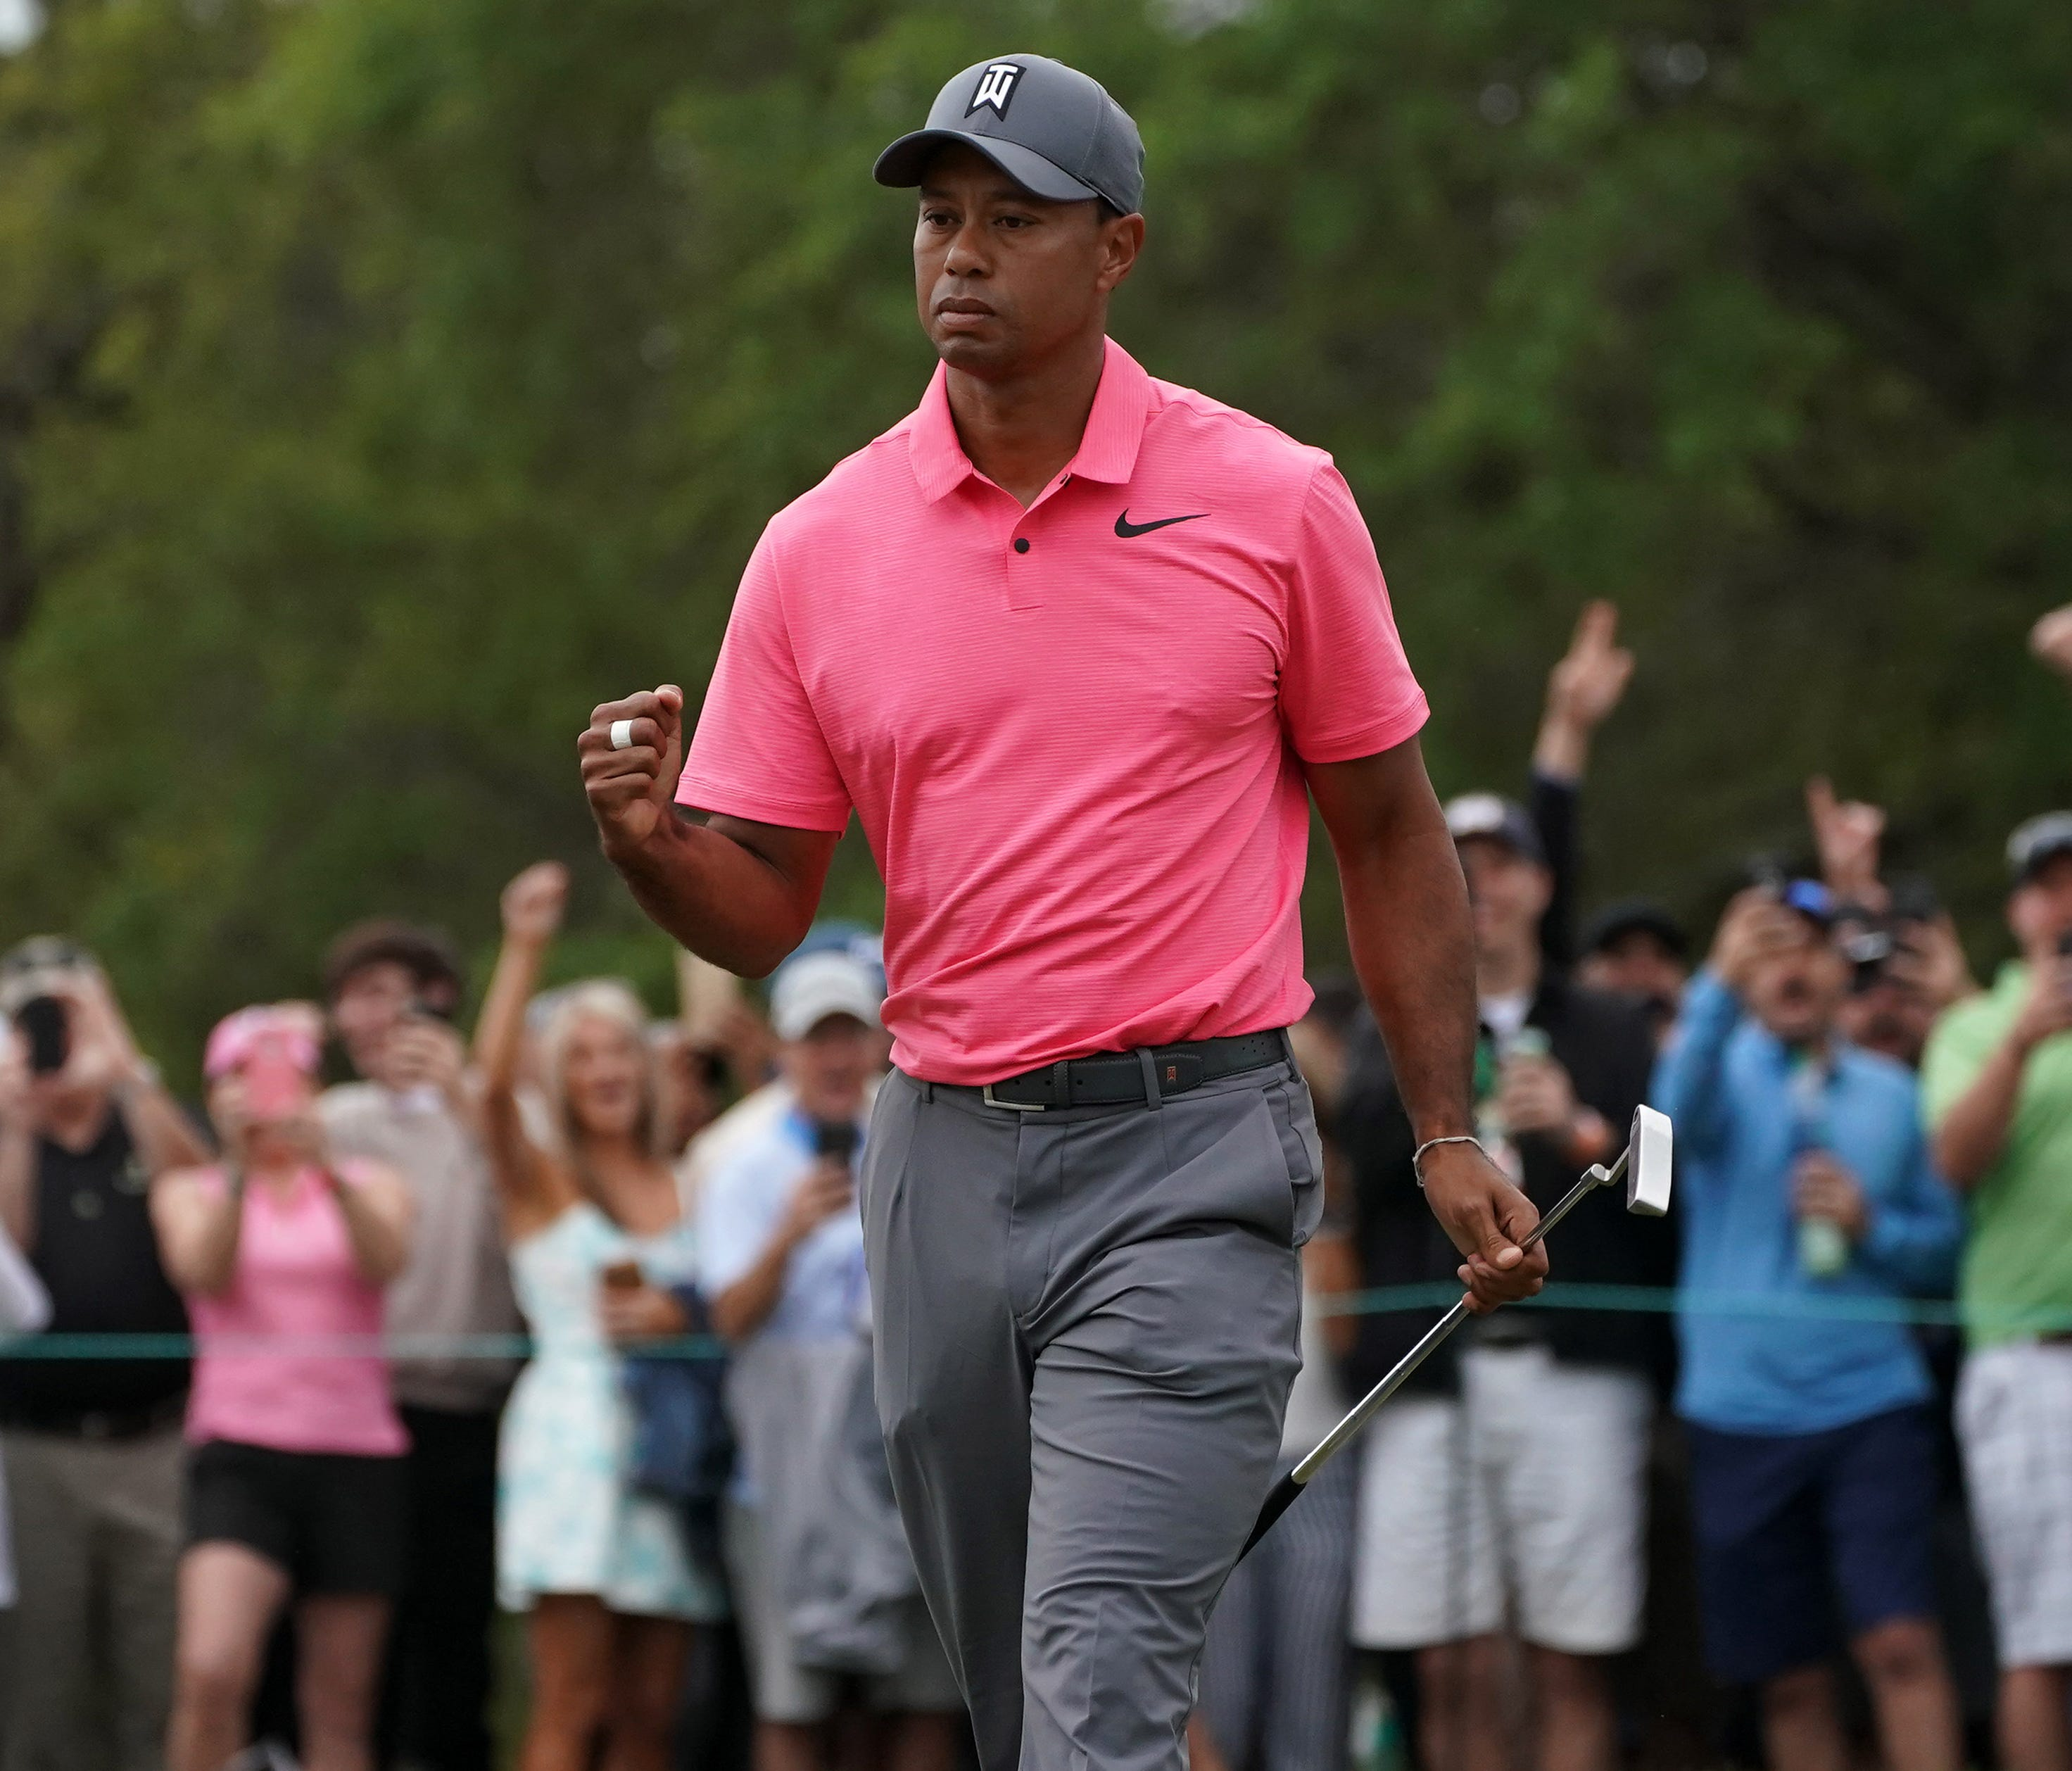 Tiger Woods pumps his fist after making a birdie putt on the 10th during the third round of the Valspar Championship golf tournament at Innisbrook Resort - Copperhead Course.